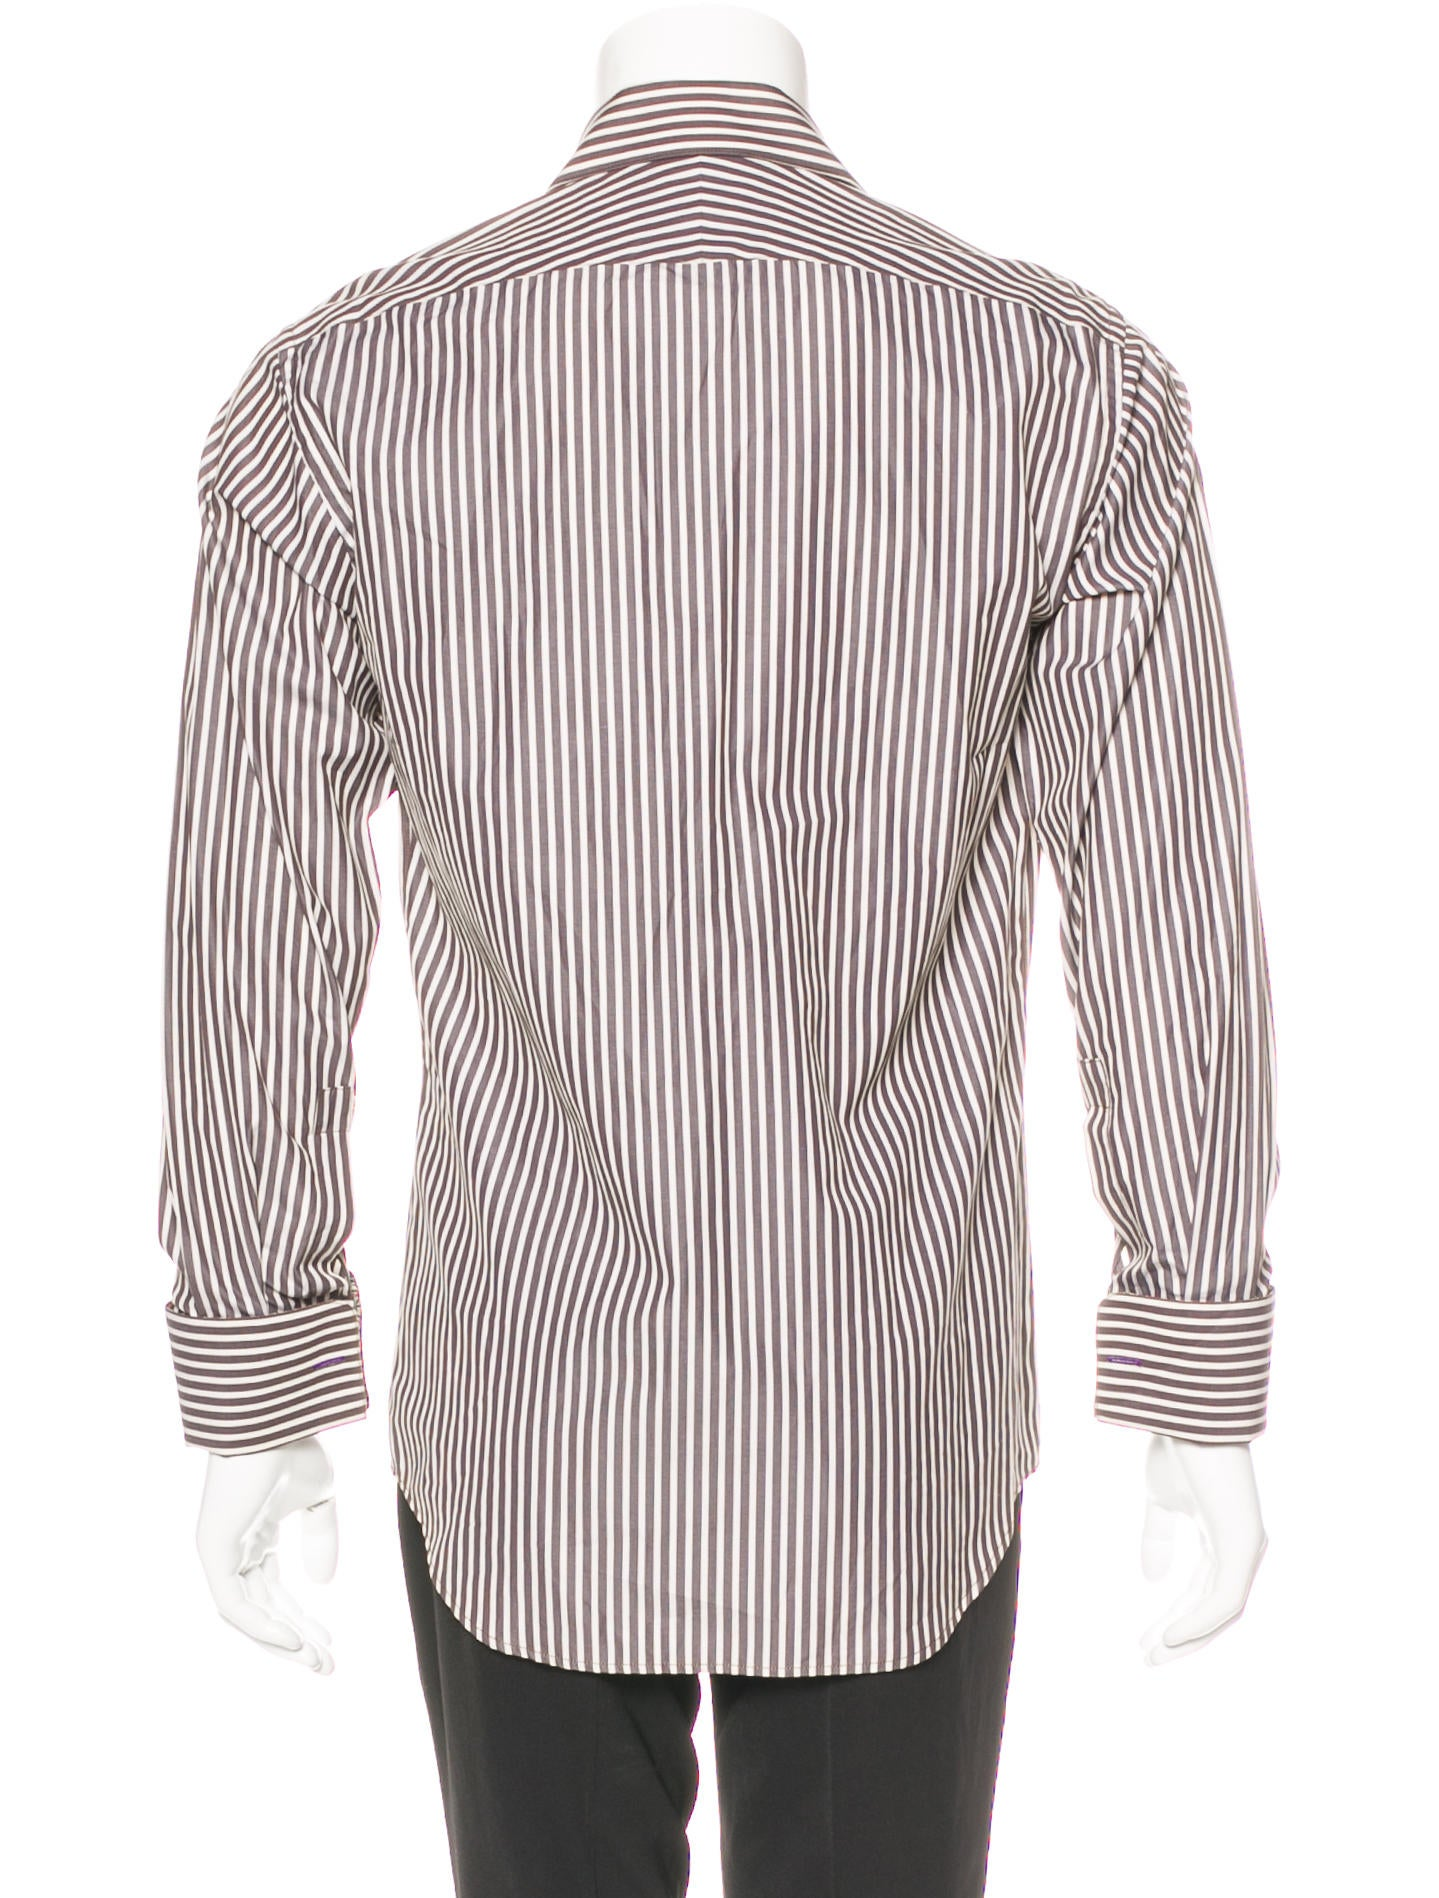 paul smith striped french cuff shirt clothing wps24625. Black Bedroom Furniture Sets. Home Design Ideas